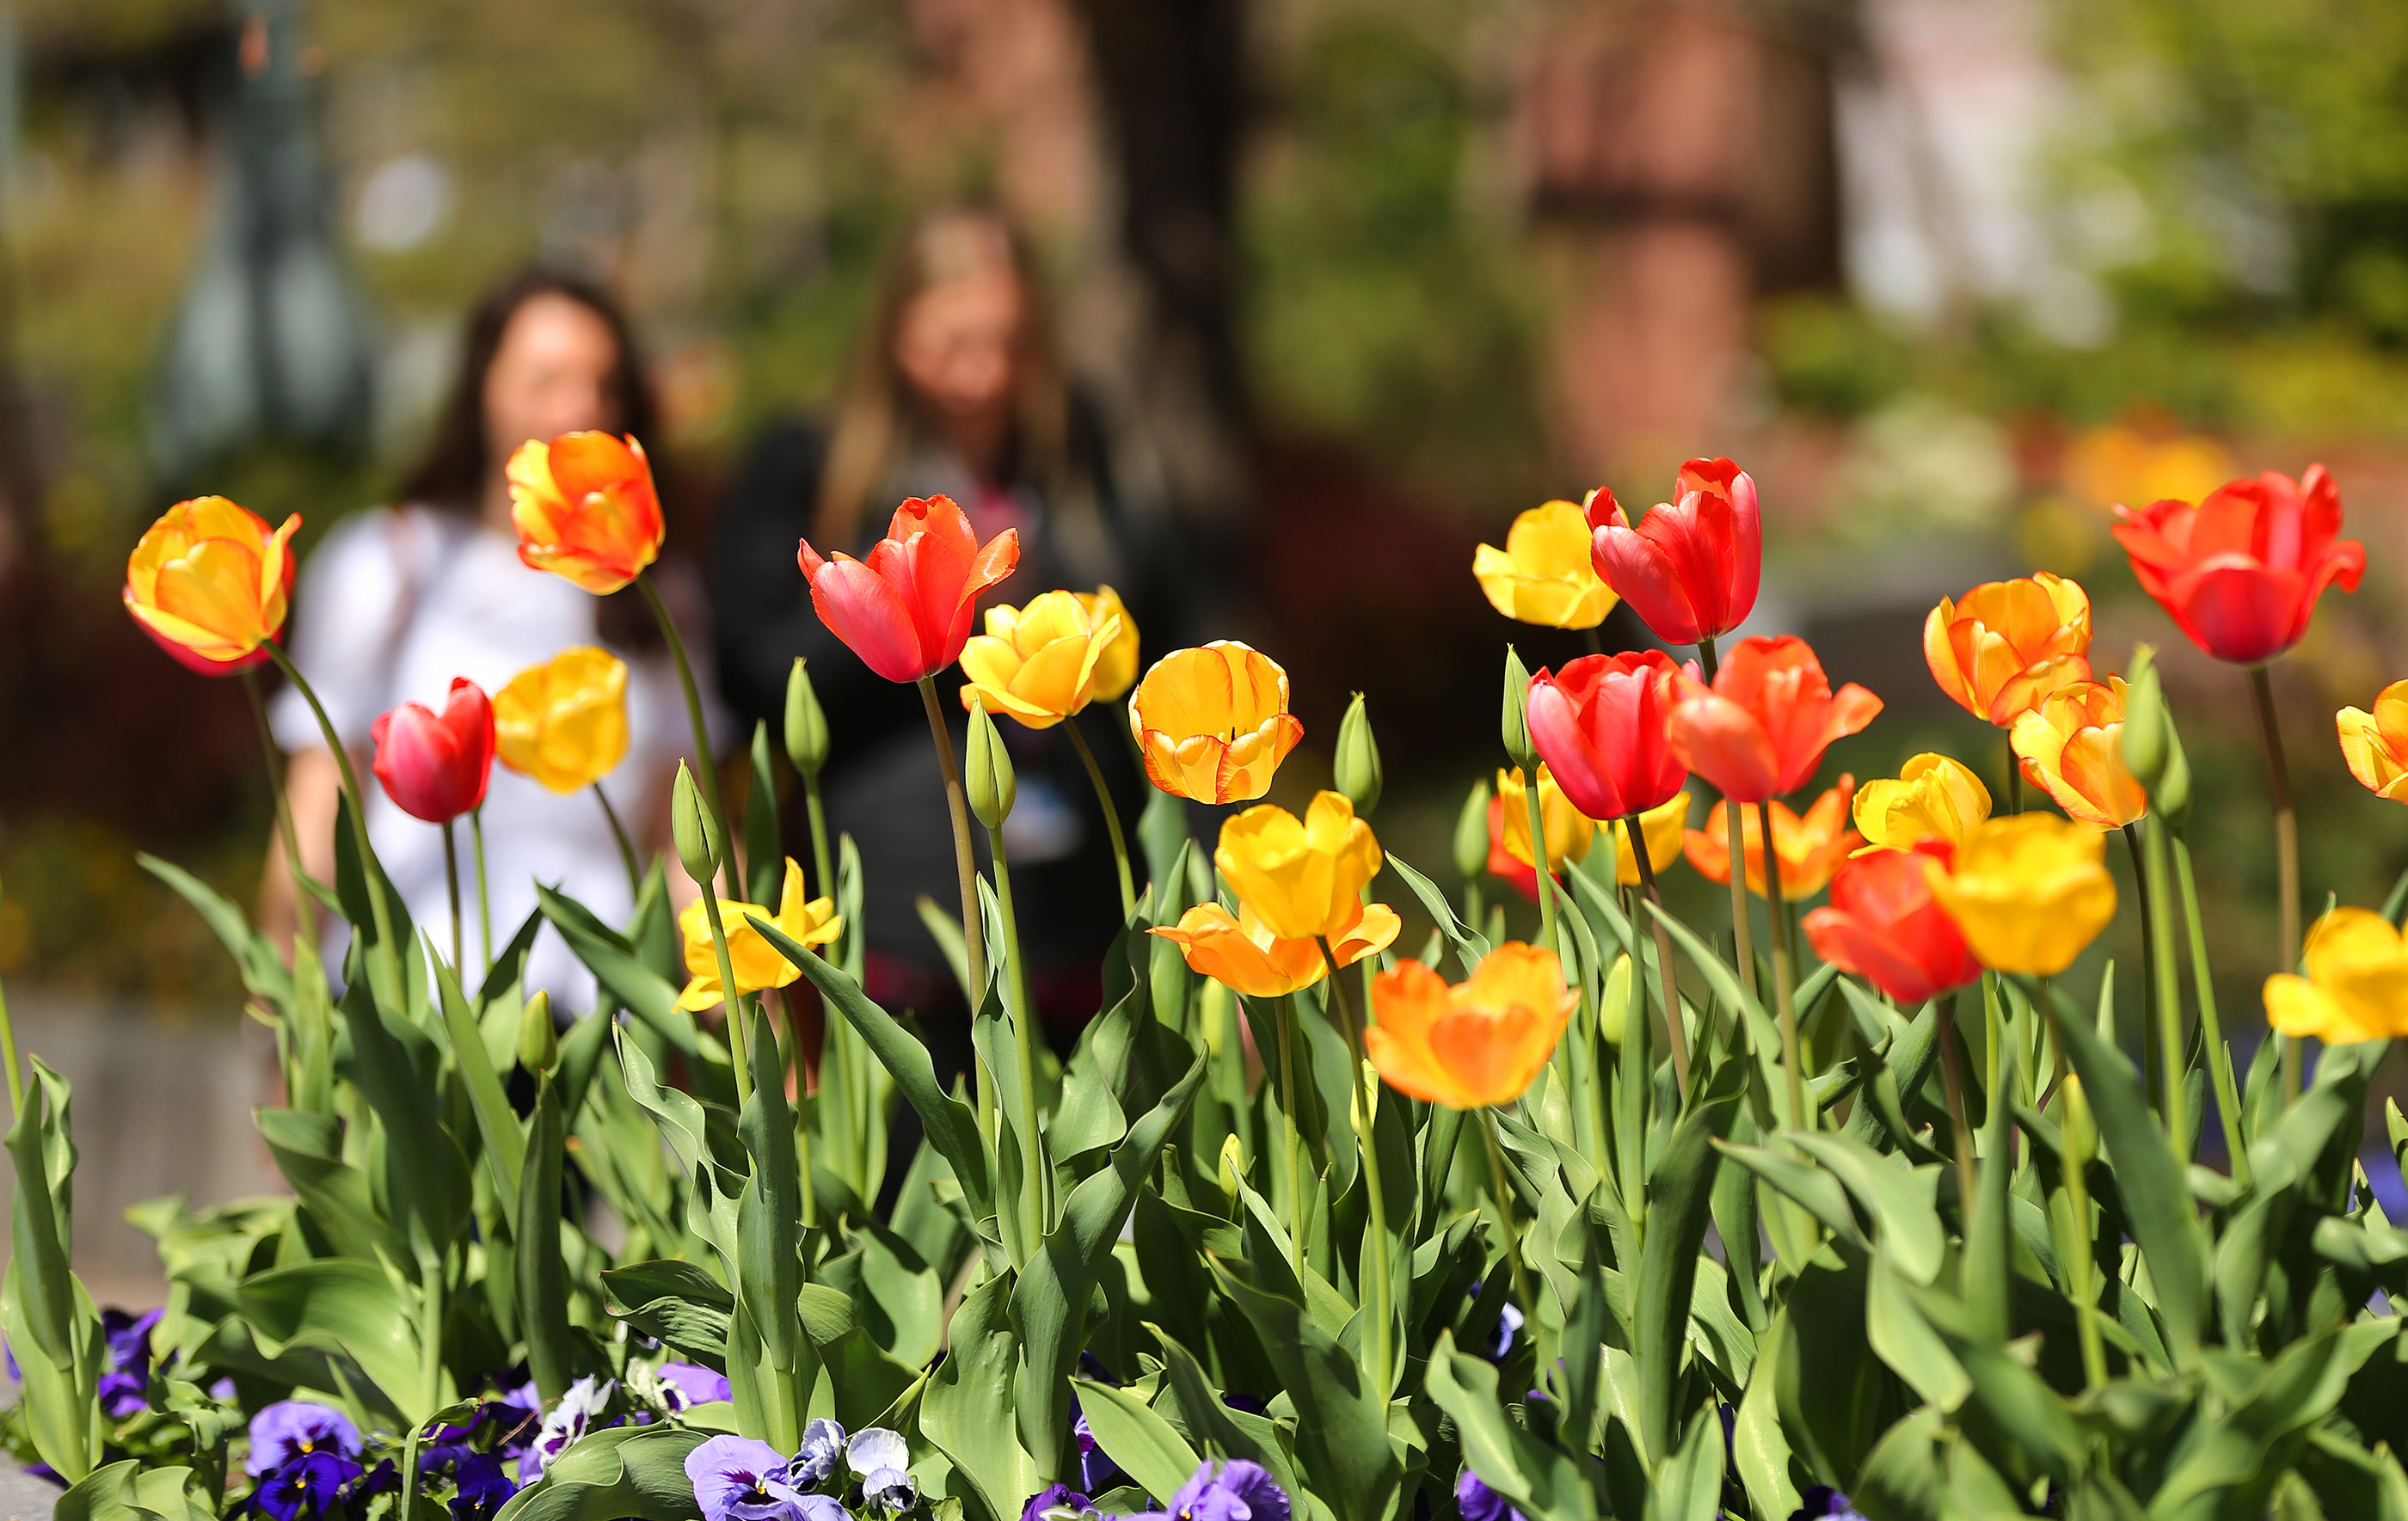 Visitors walks past flowers on the grounds of the Salt Lake Temple in Salt Lake City on Friday, April 19, 2019.